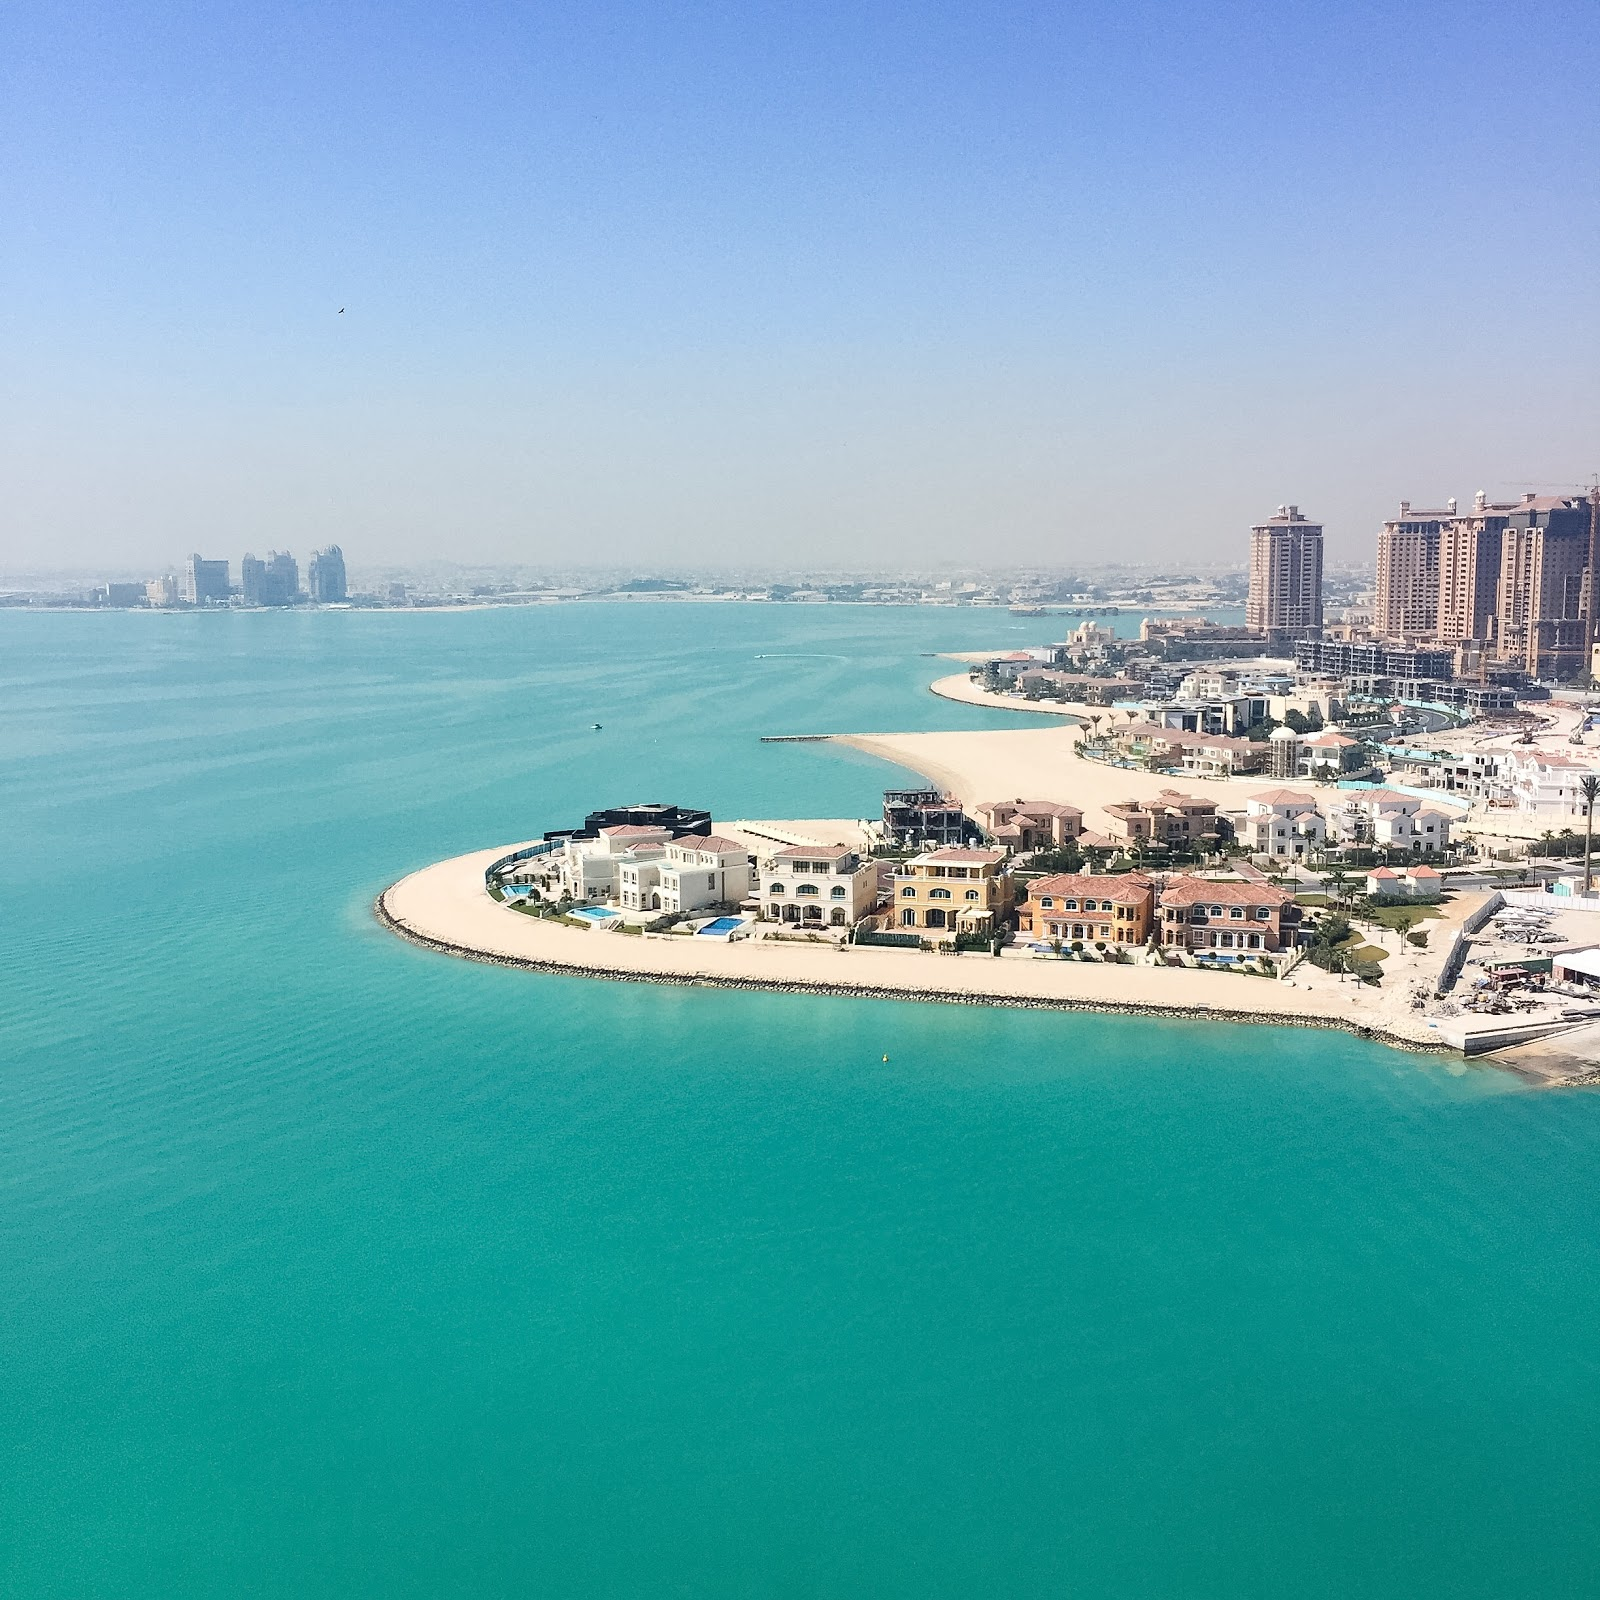 Visiting Qatar: Doha City Views